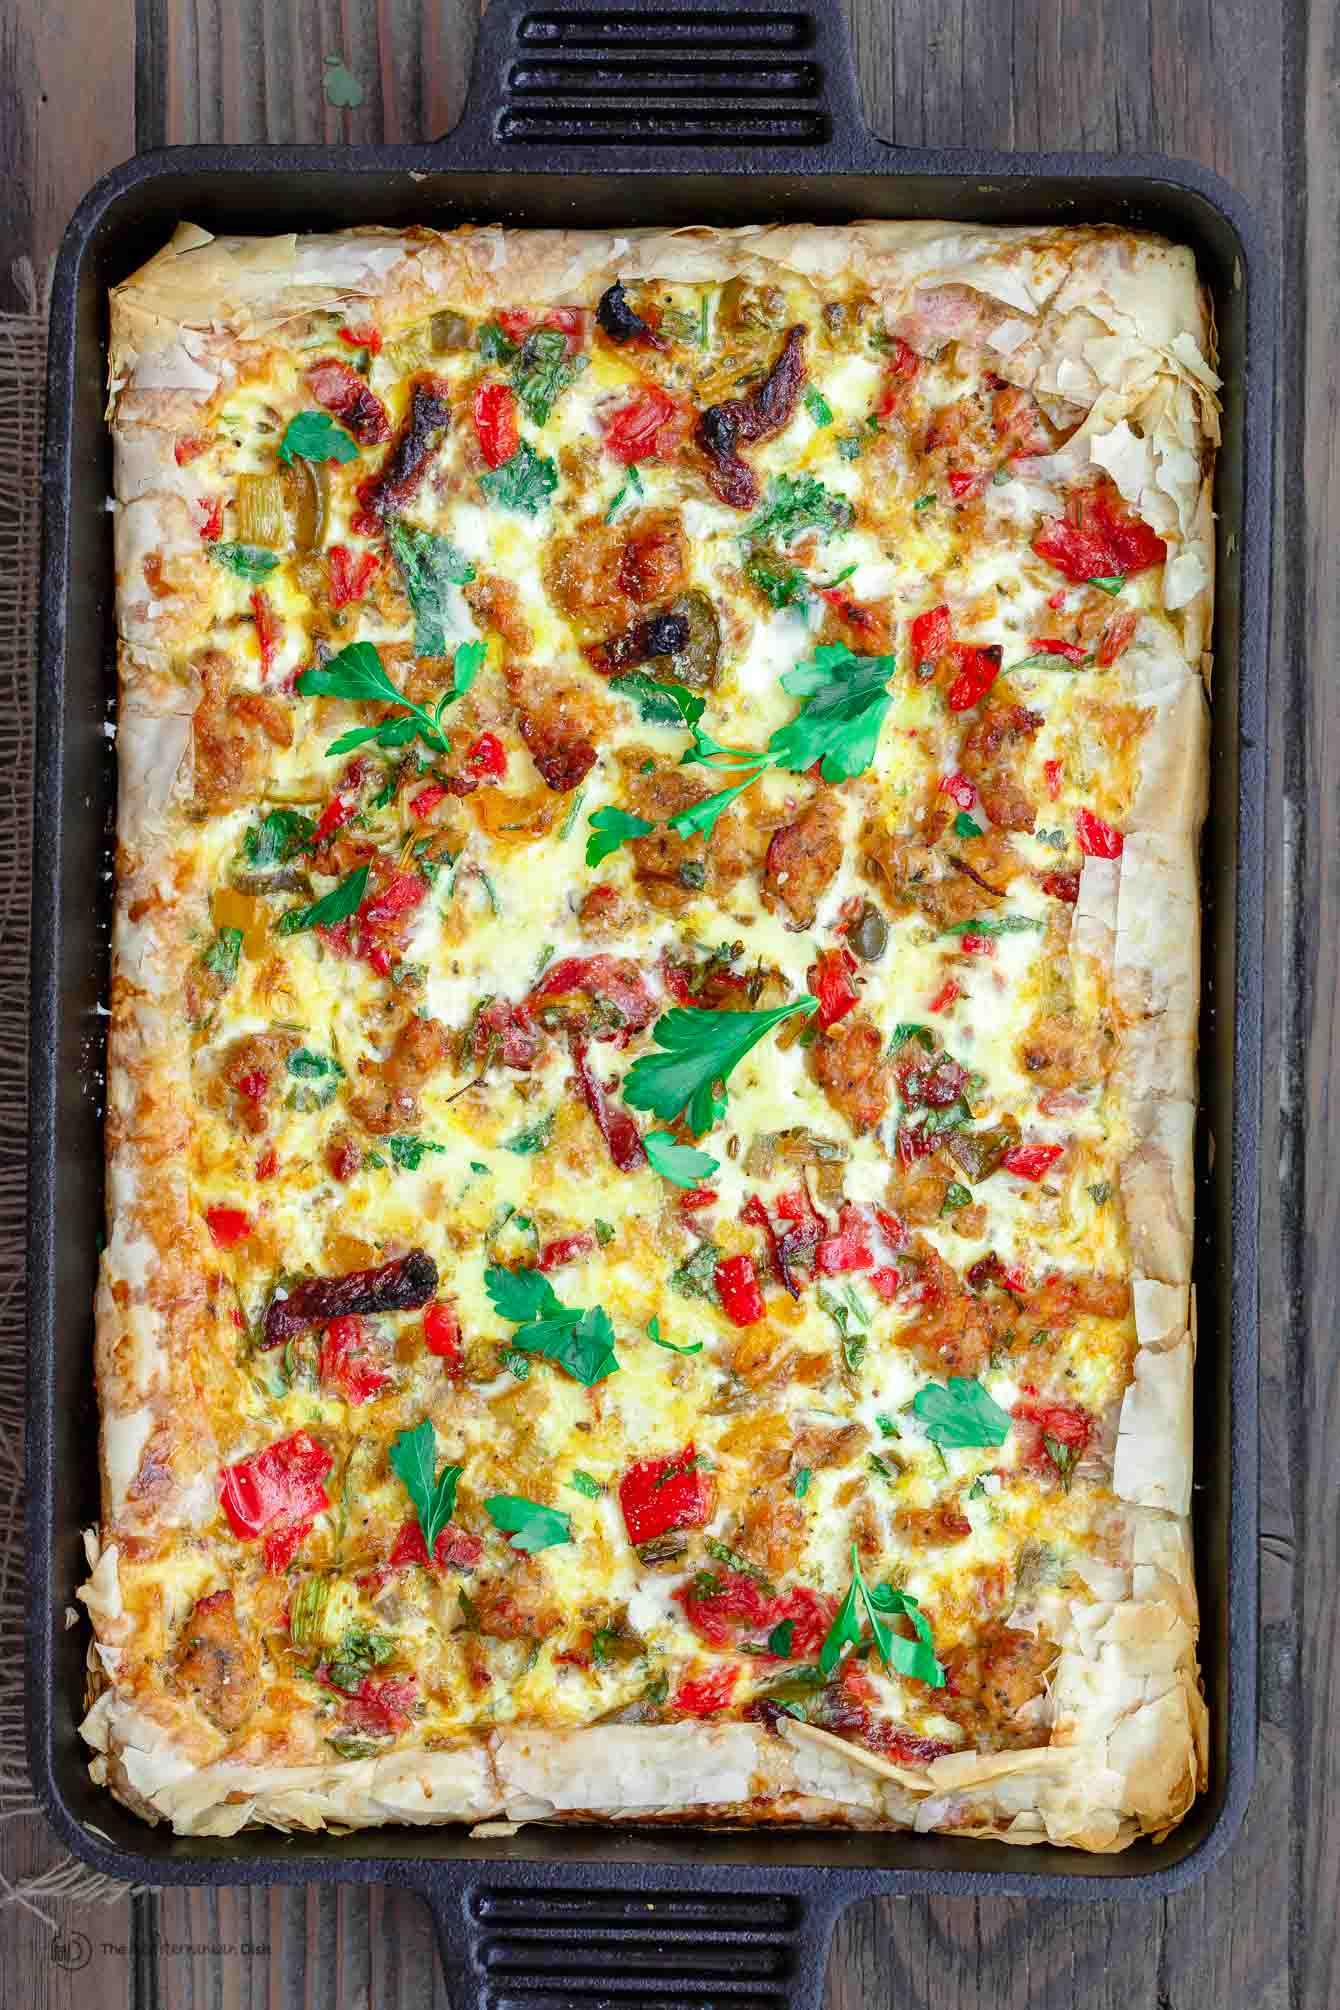 Baked Breakfast Strata ready to be cut and served